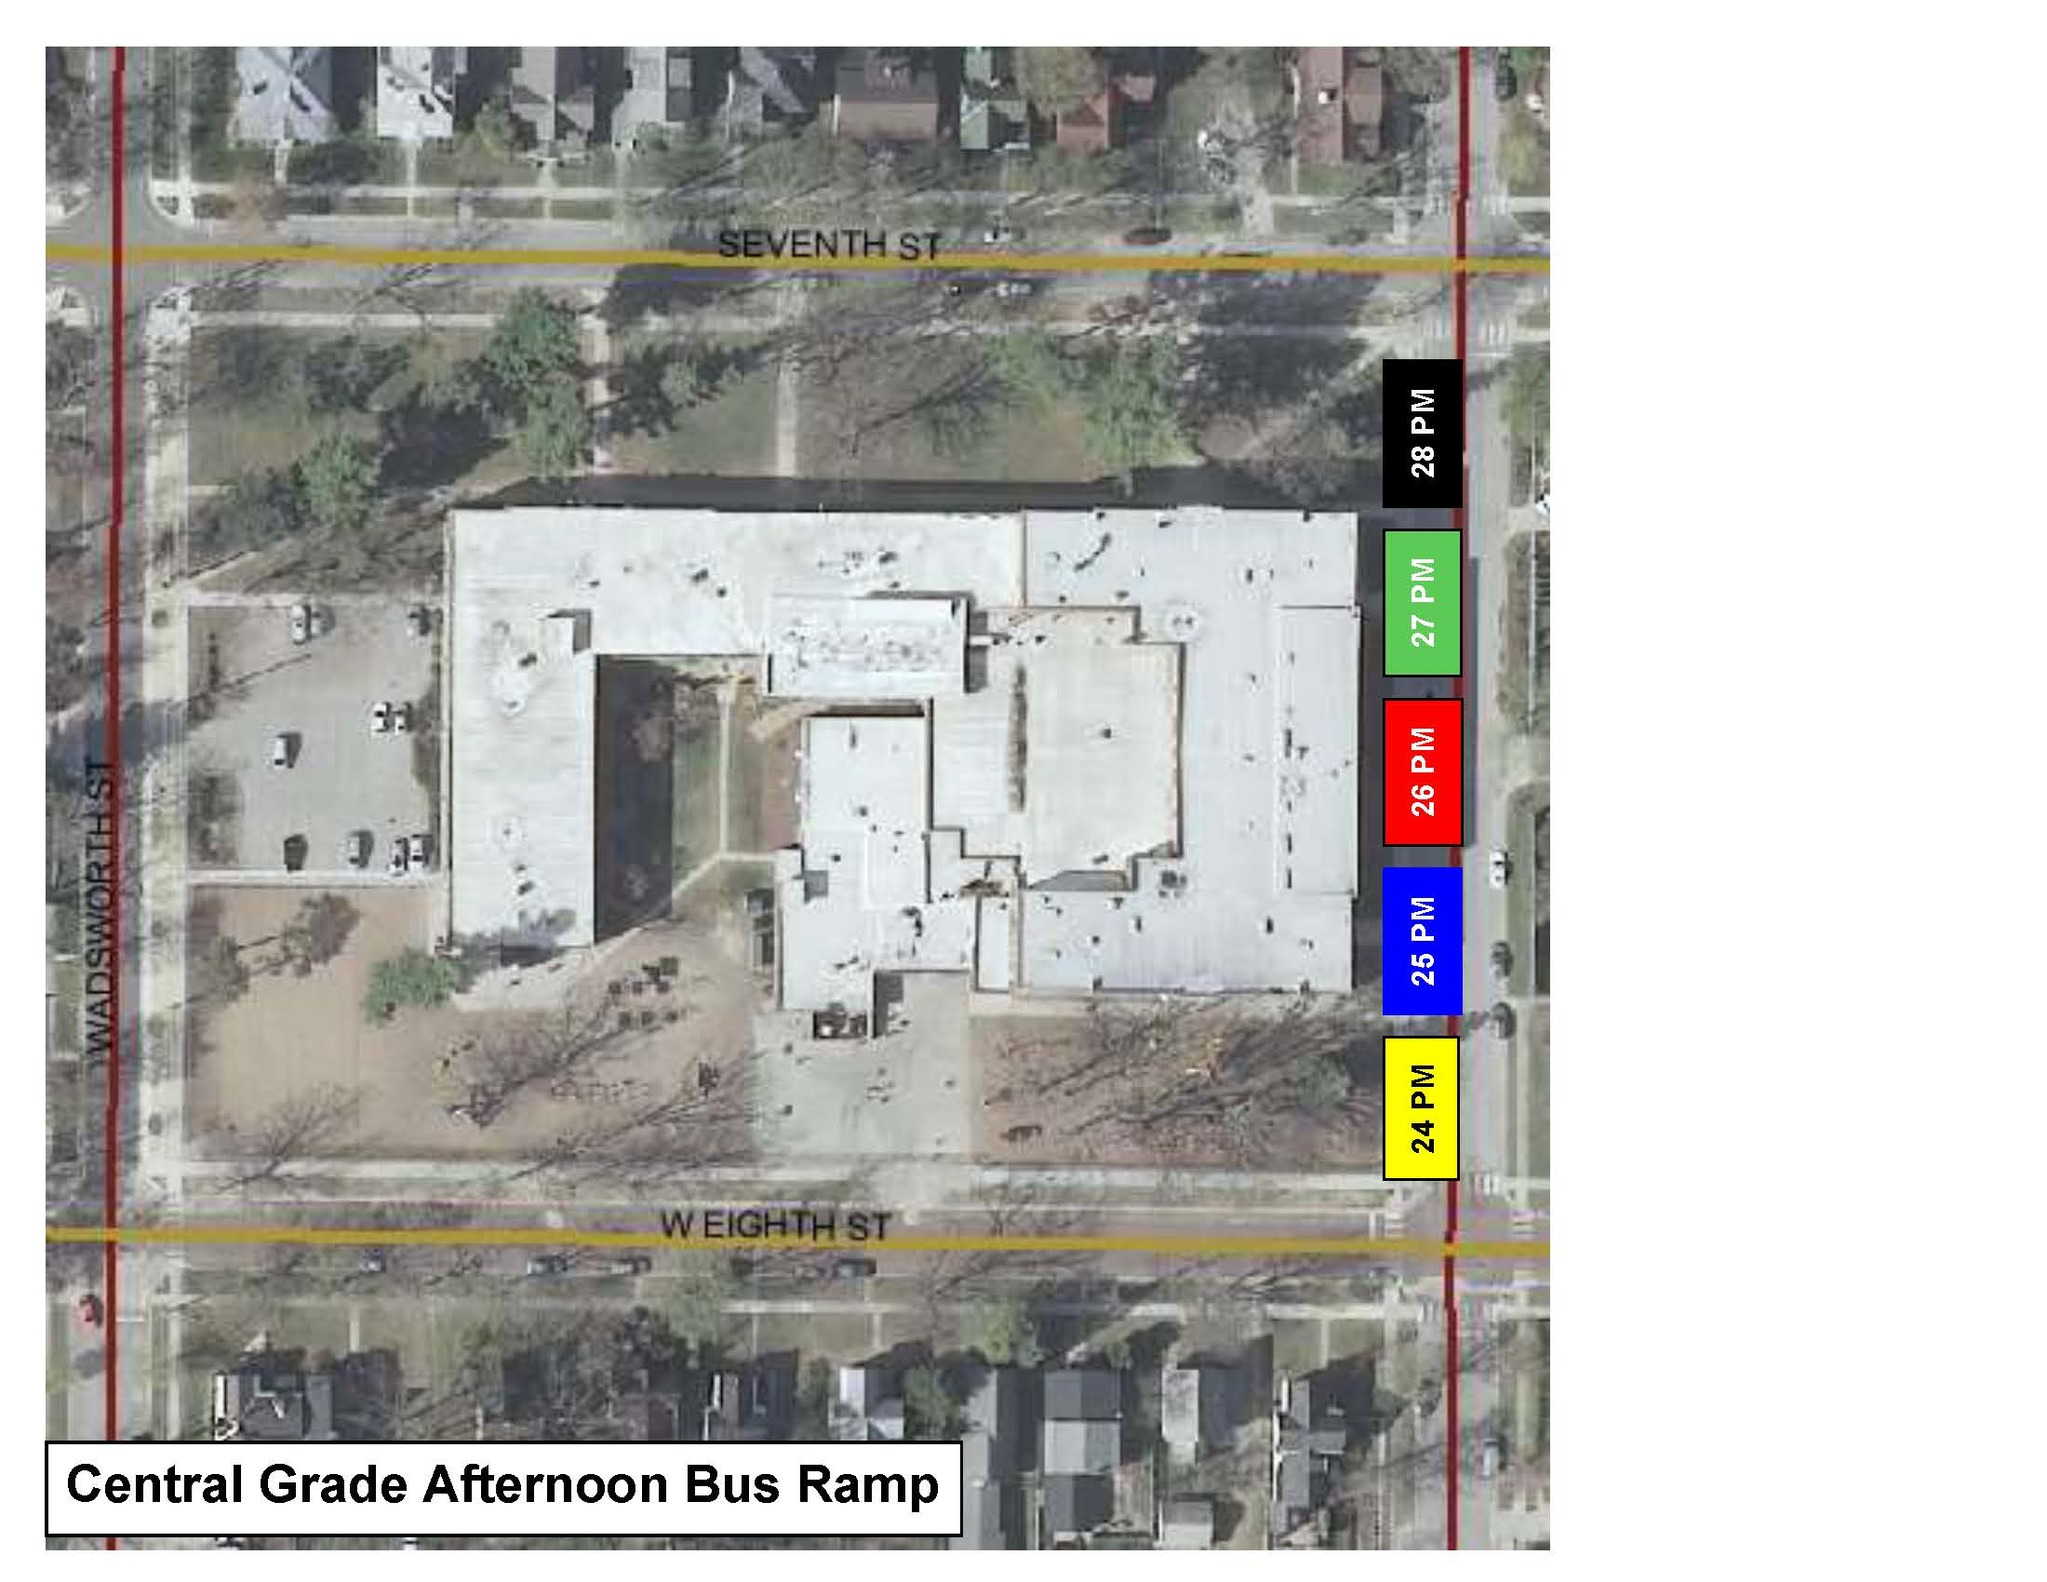 Central Grade bus ramp parking map